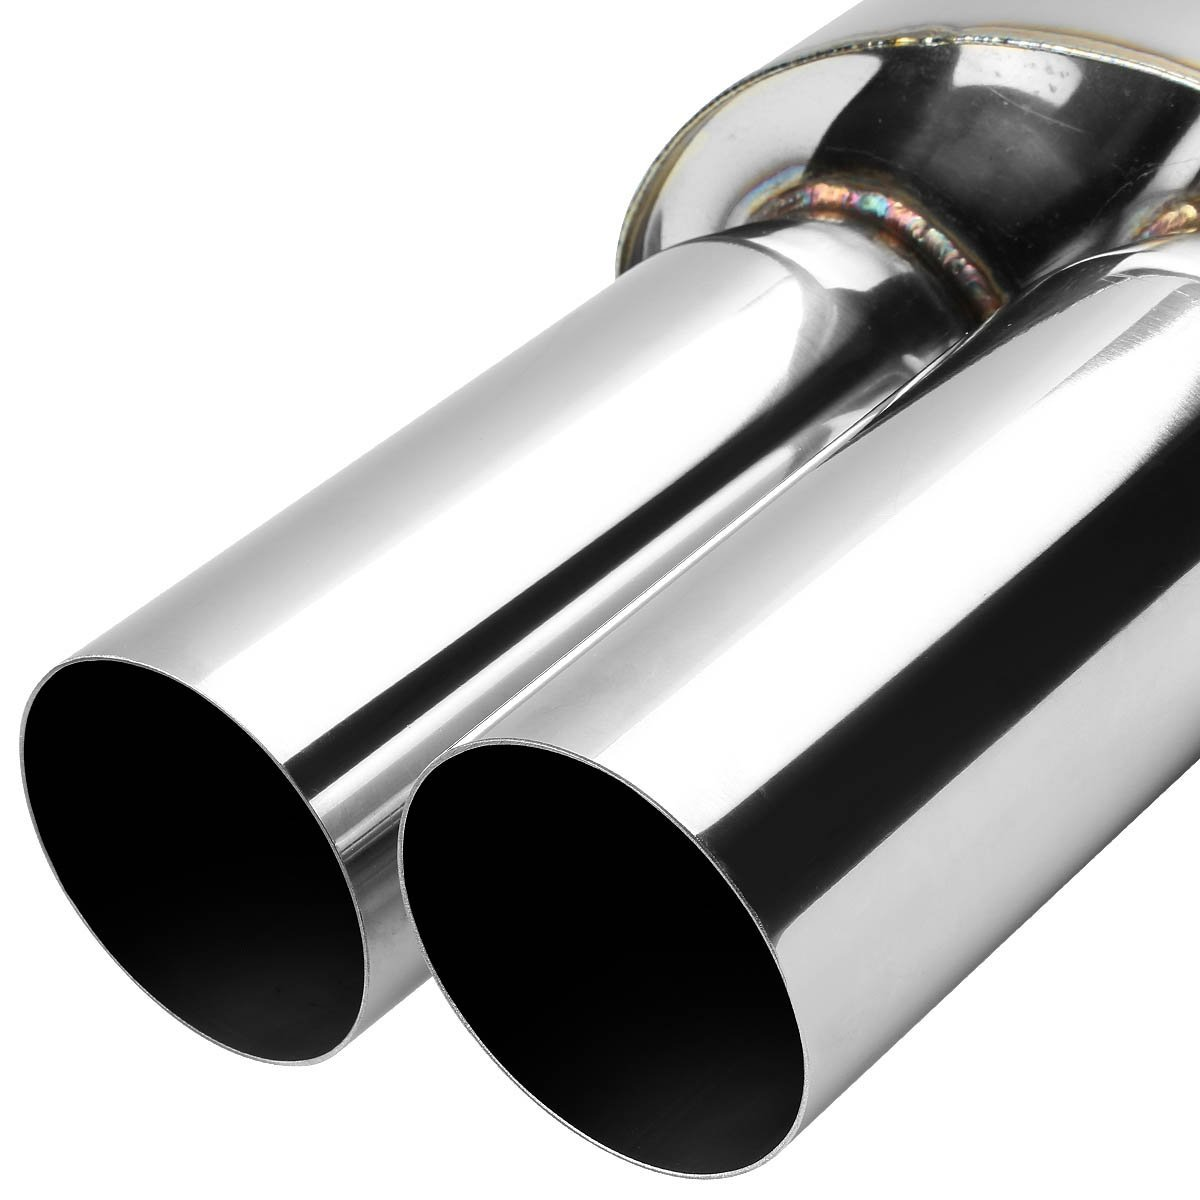 Universal dual tip stainless steel exhaust muffler quot inlet